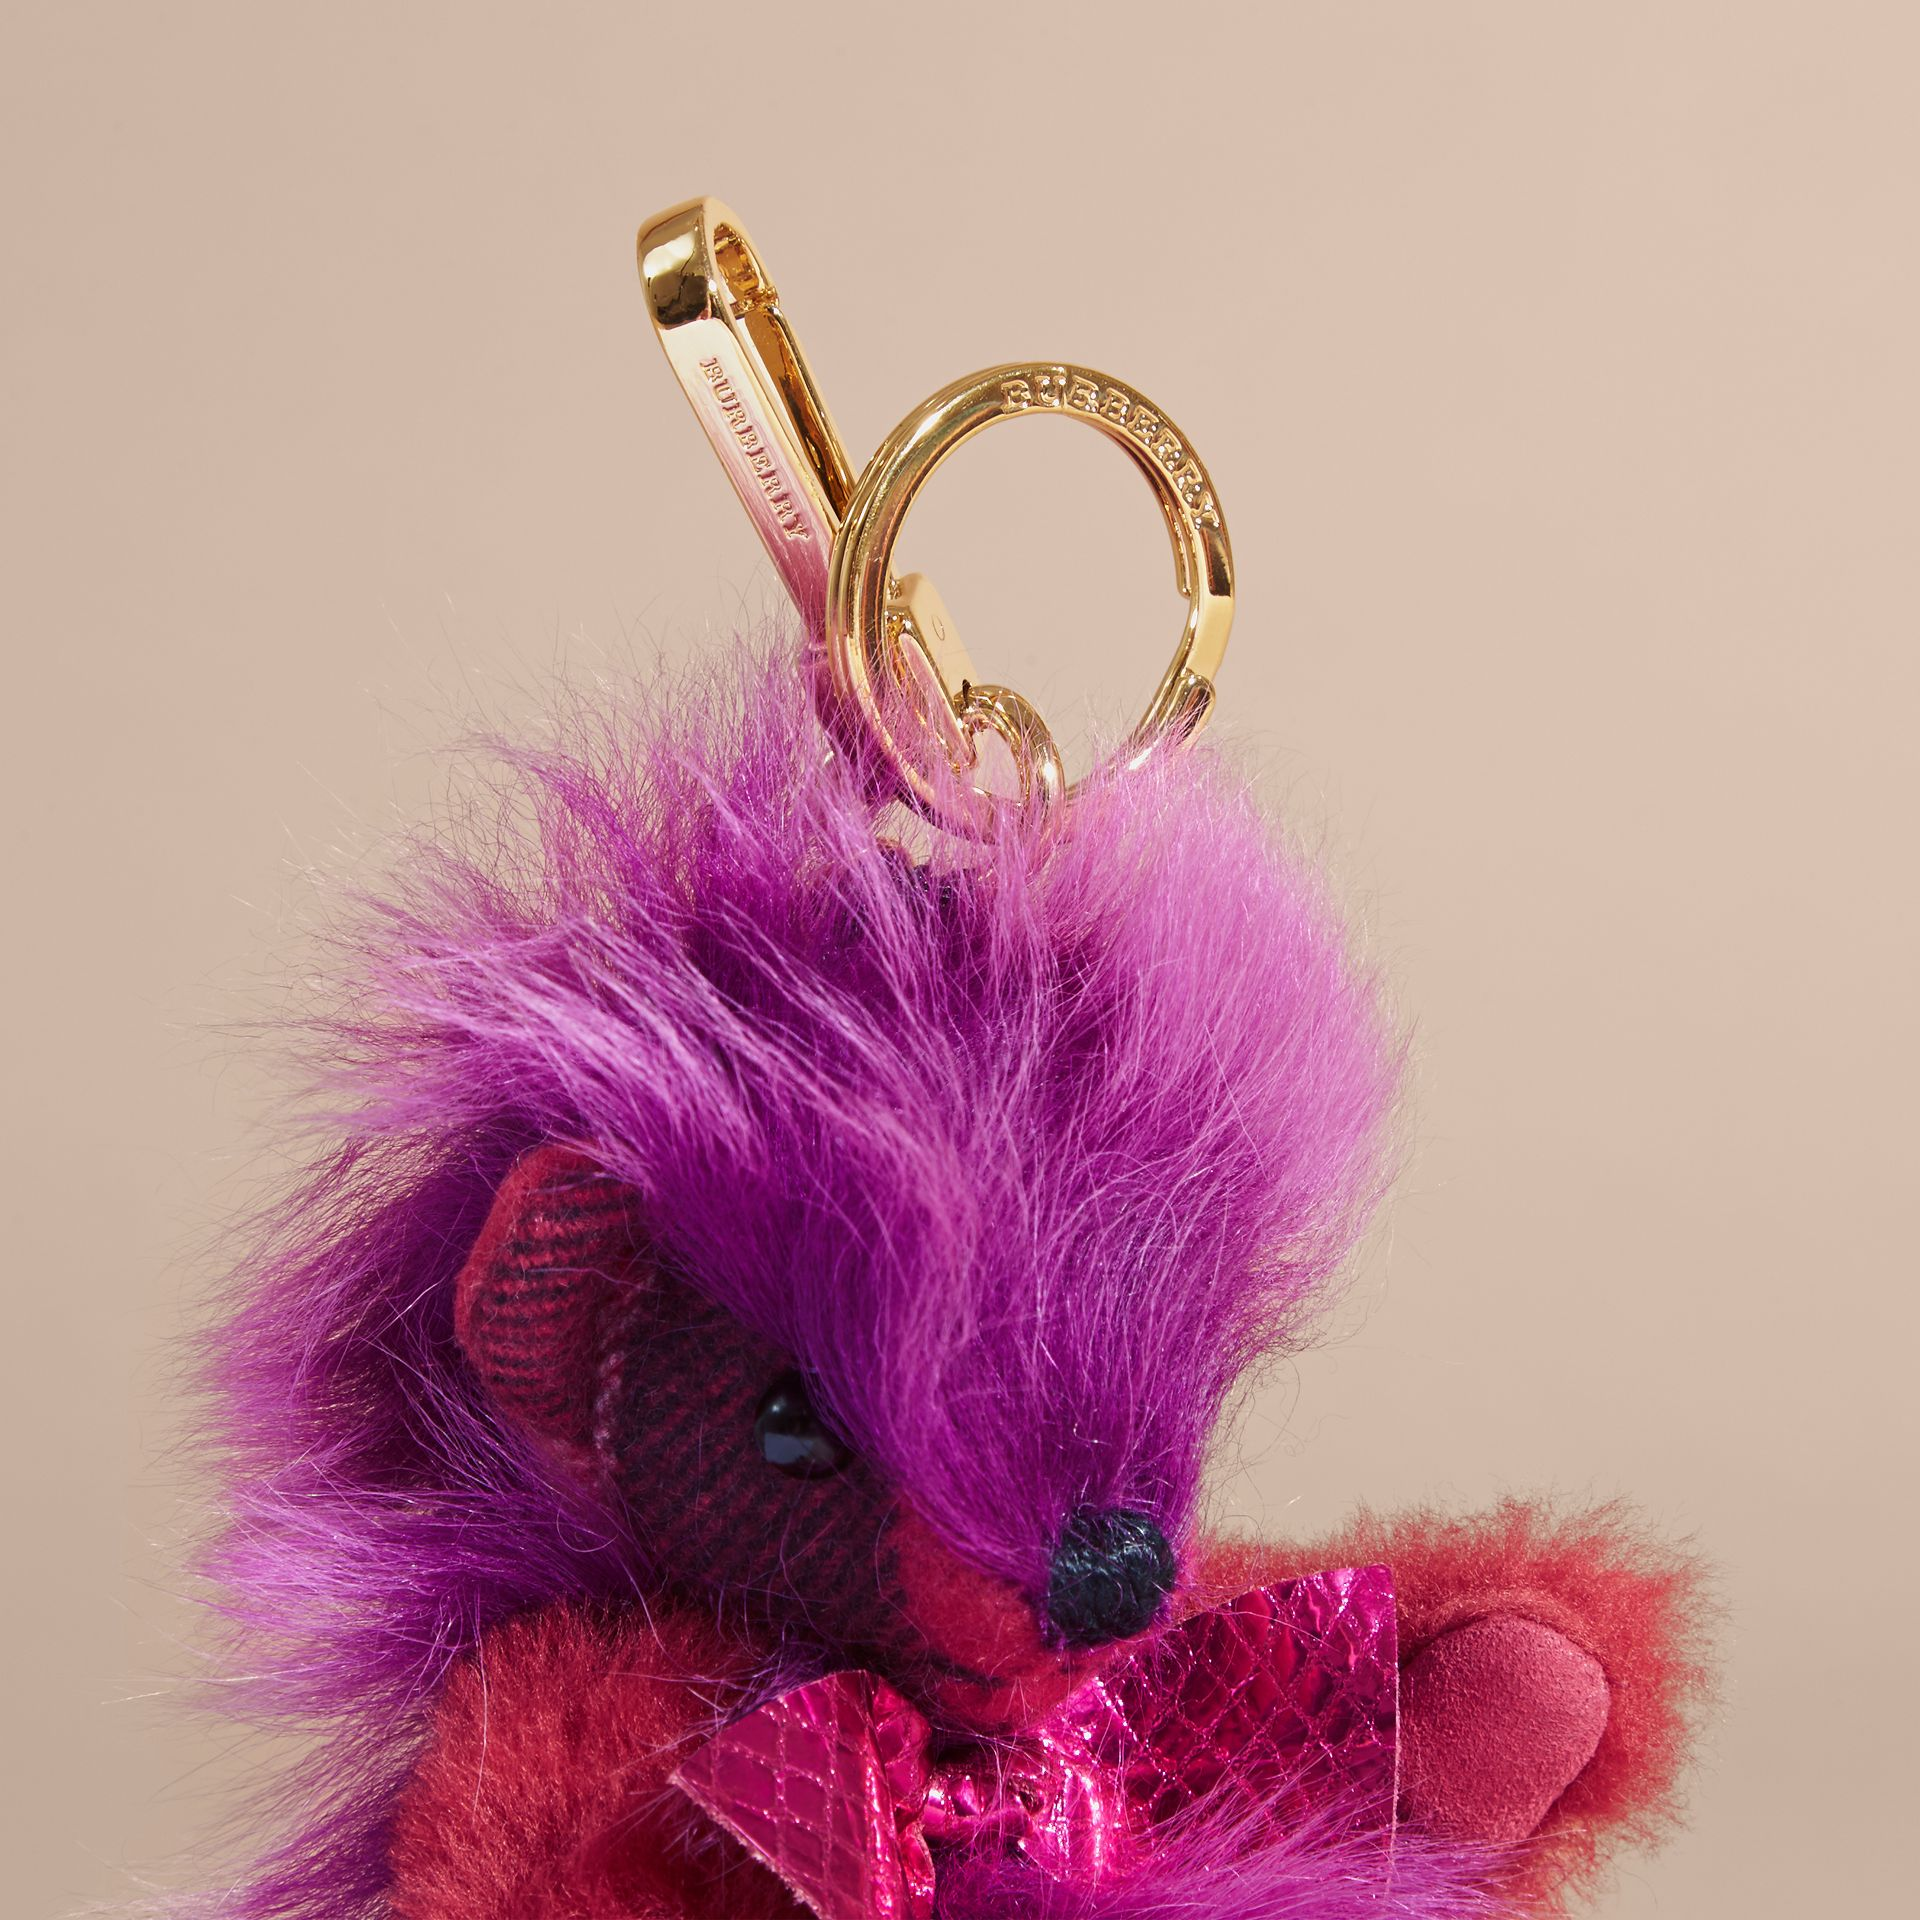 Thomas Bear Pom-Pom Charm in Check Cashmere in Fuchsia Pink - Women | Burberry United States - gallery image 1